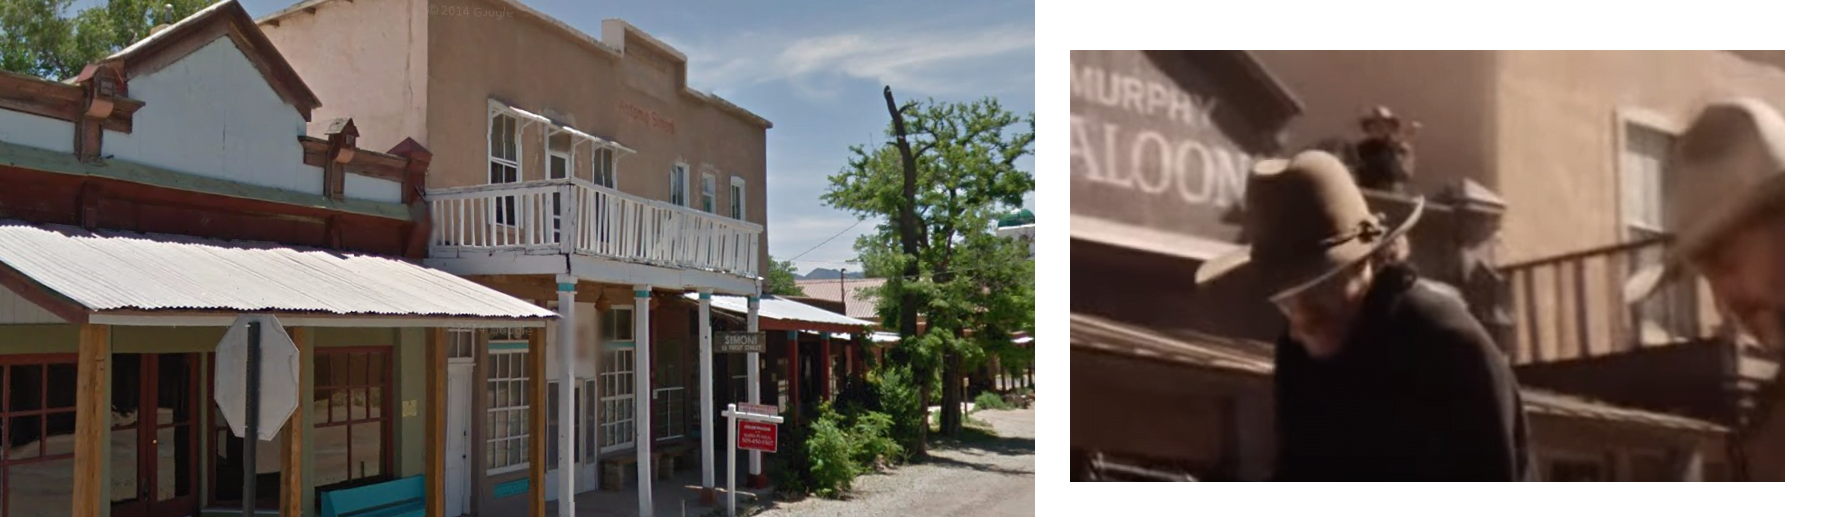 young-guns-1988-filming-locations